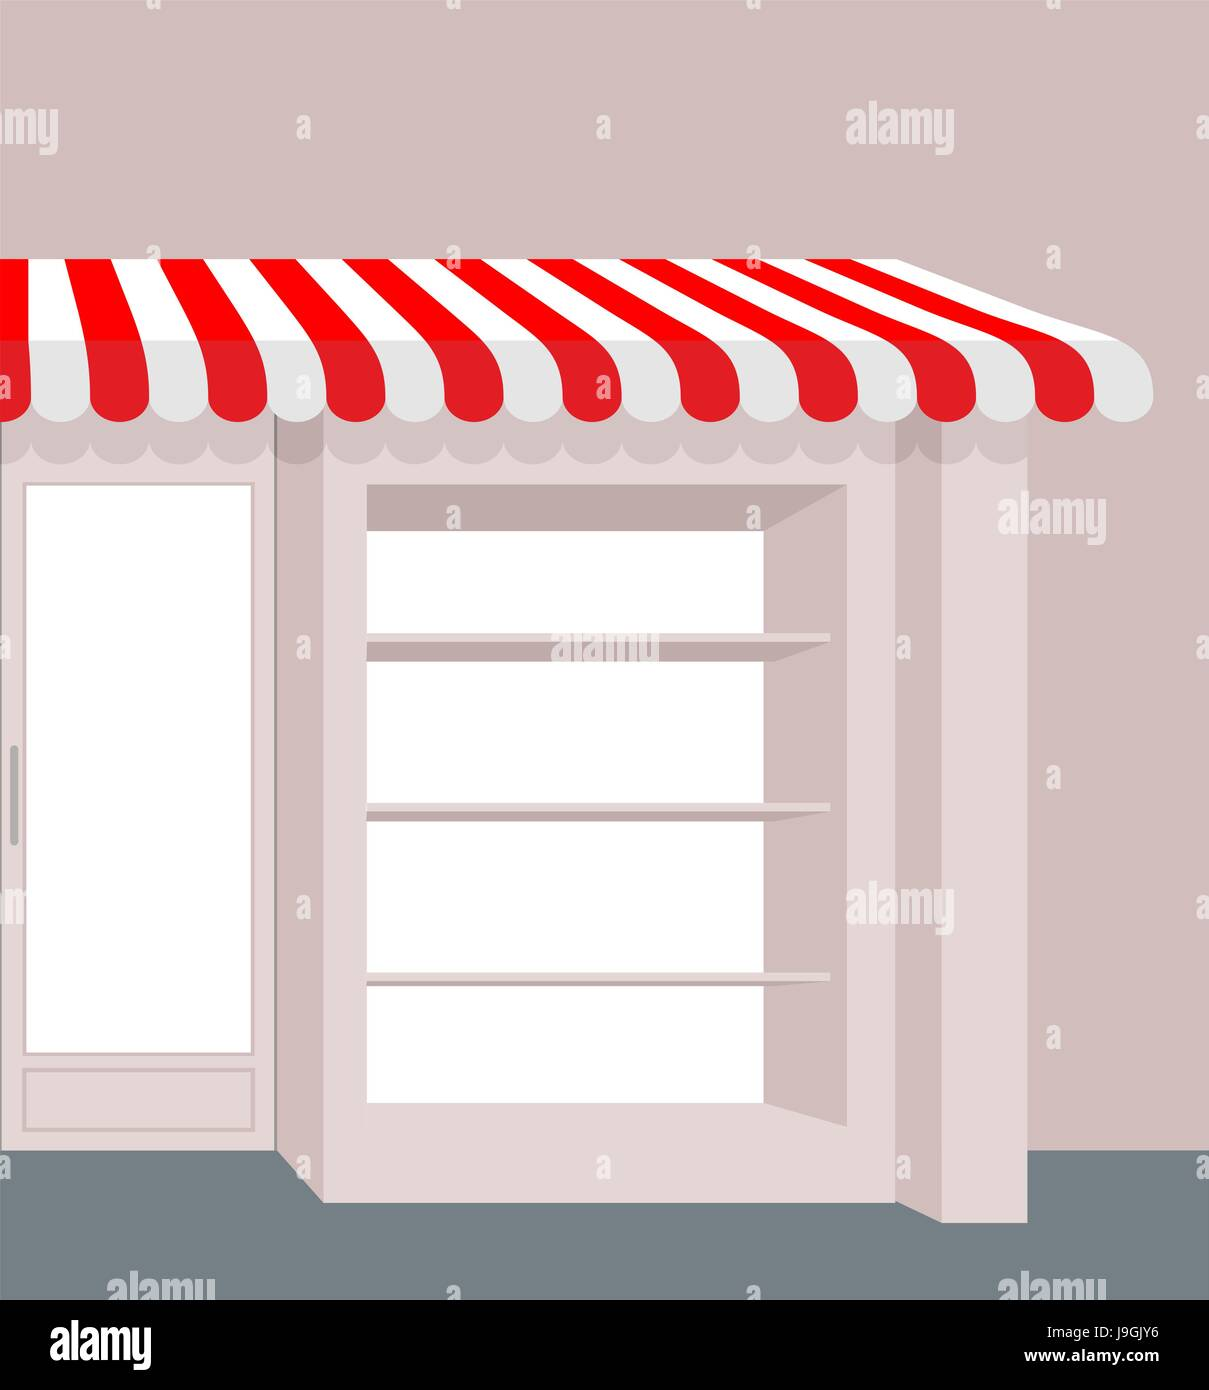 Storefront with striped roof. Red and white stripes of canopy over counter. Element of building & Storefront with striped roof. Red and white stripes of canopy over ...